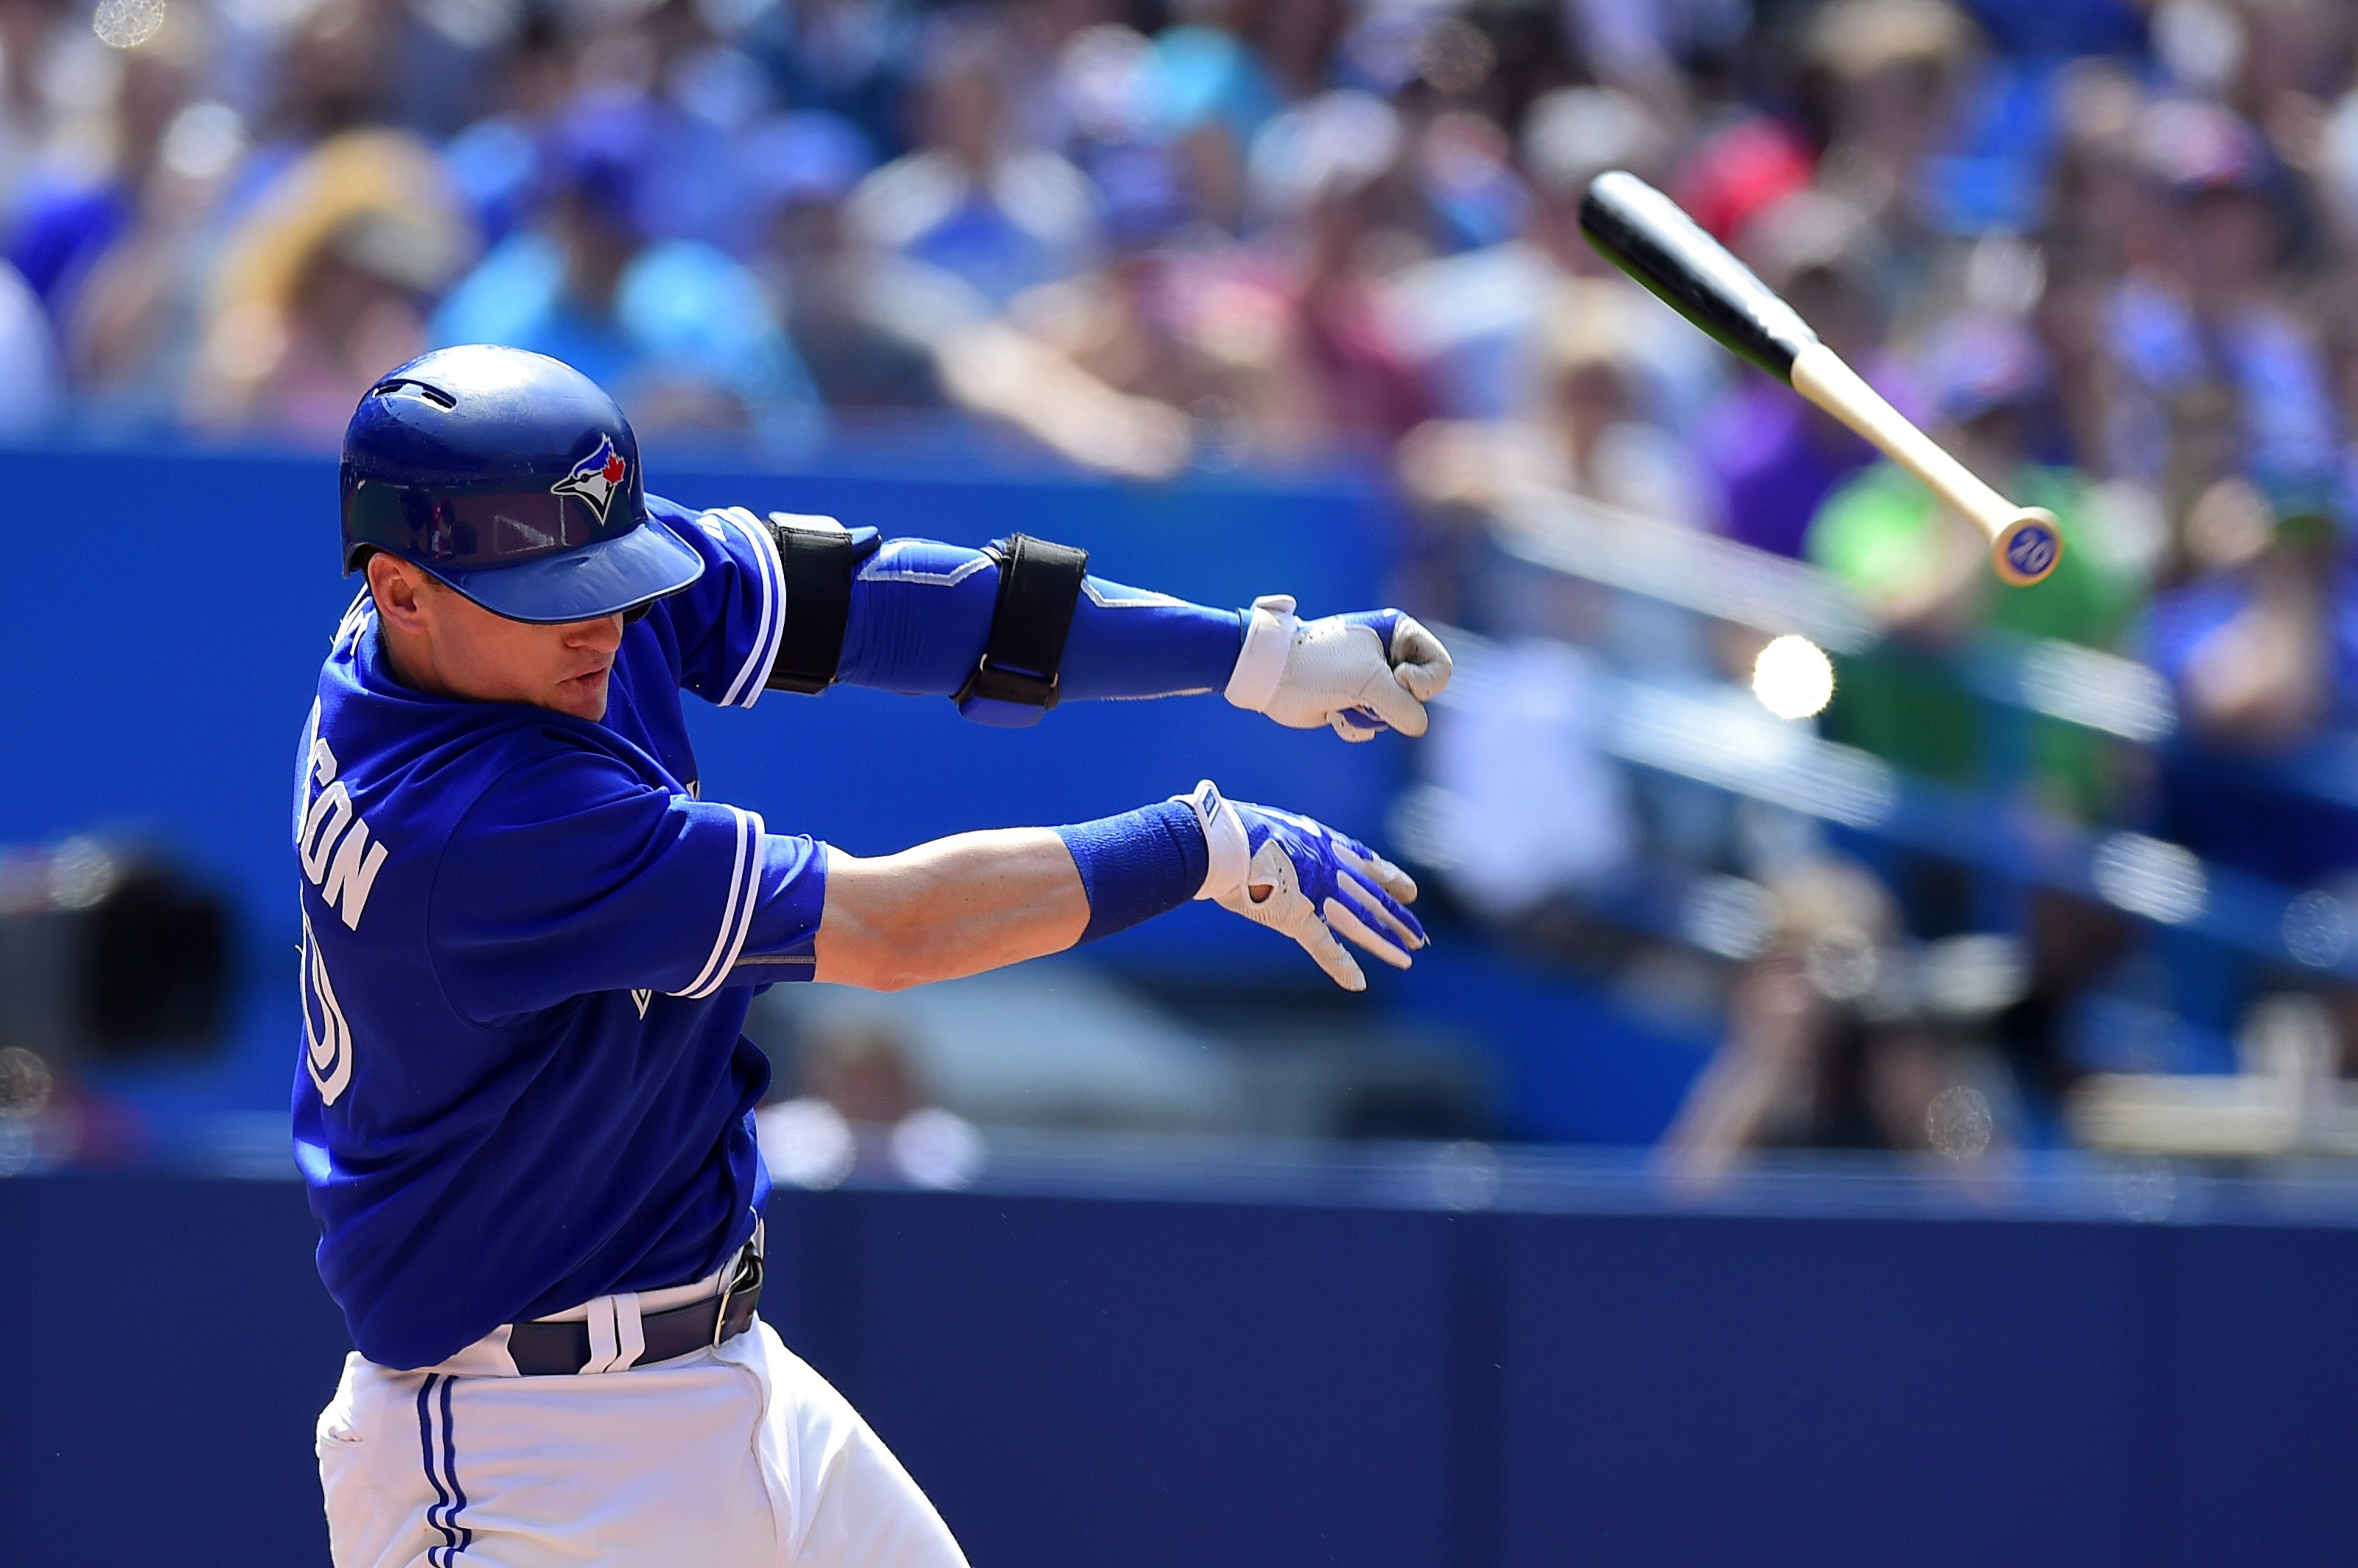 Toronto Blue Jays' Josh Donaldson strikes out swinging and loses control of his bat during the sixth inning of a baseball game against the Los Angeles Angels in Toronto, Monday, May 18, 2015. (Frank Gunn/The Canadian Press via AP)